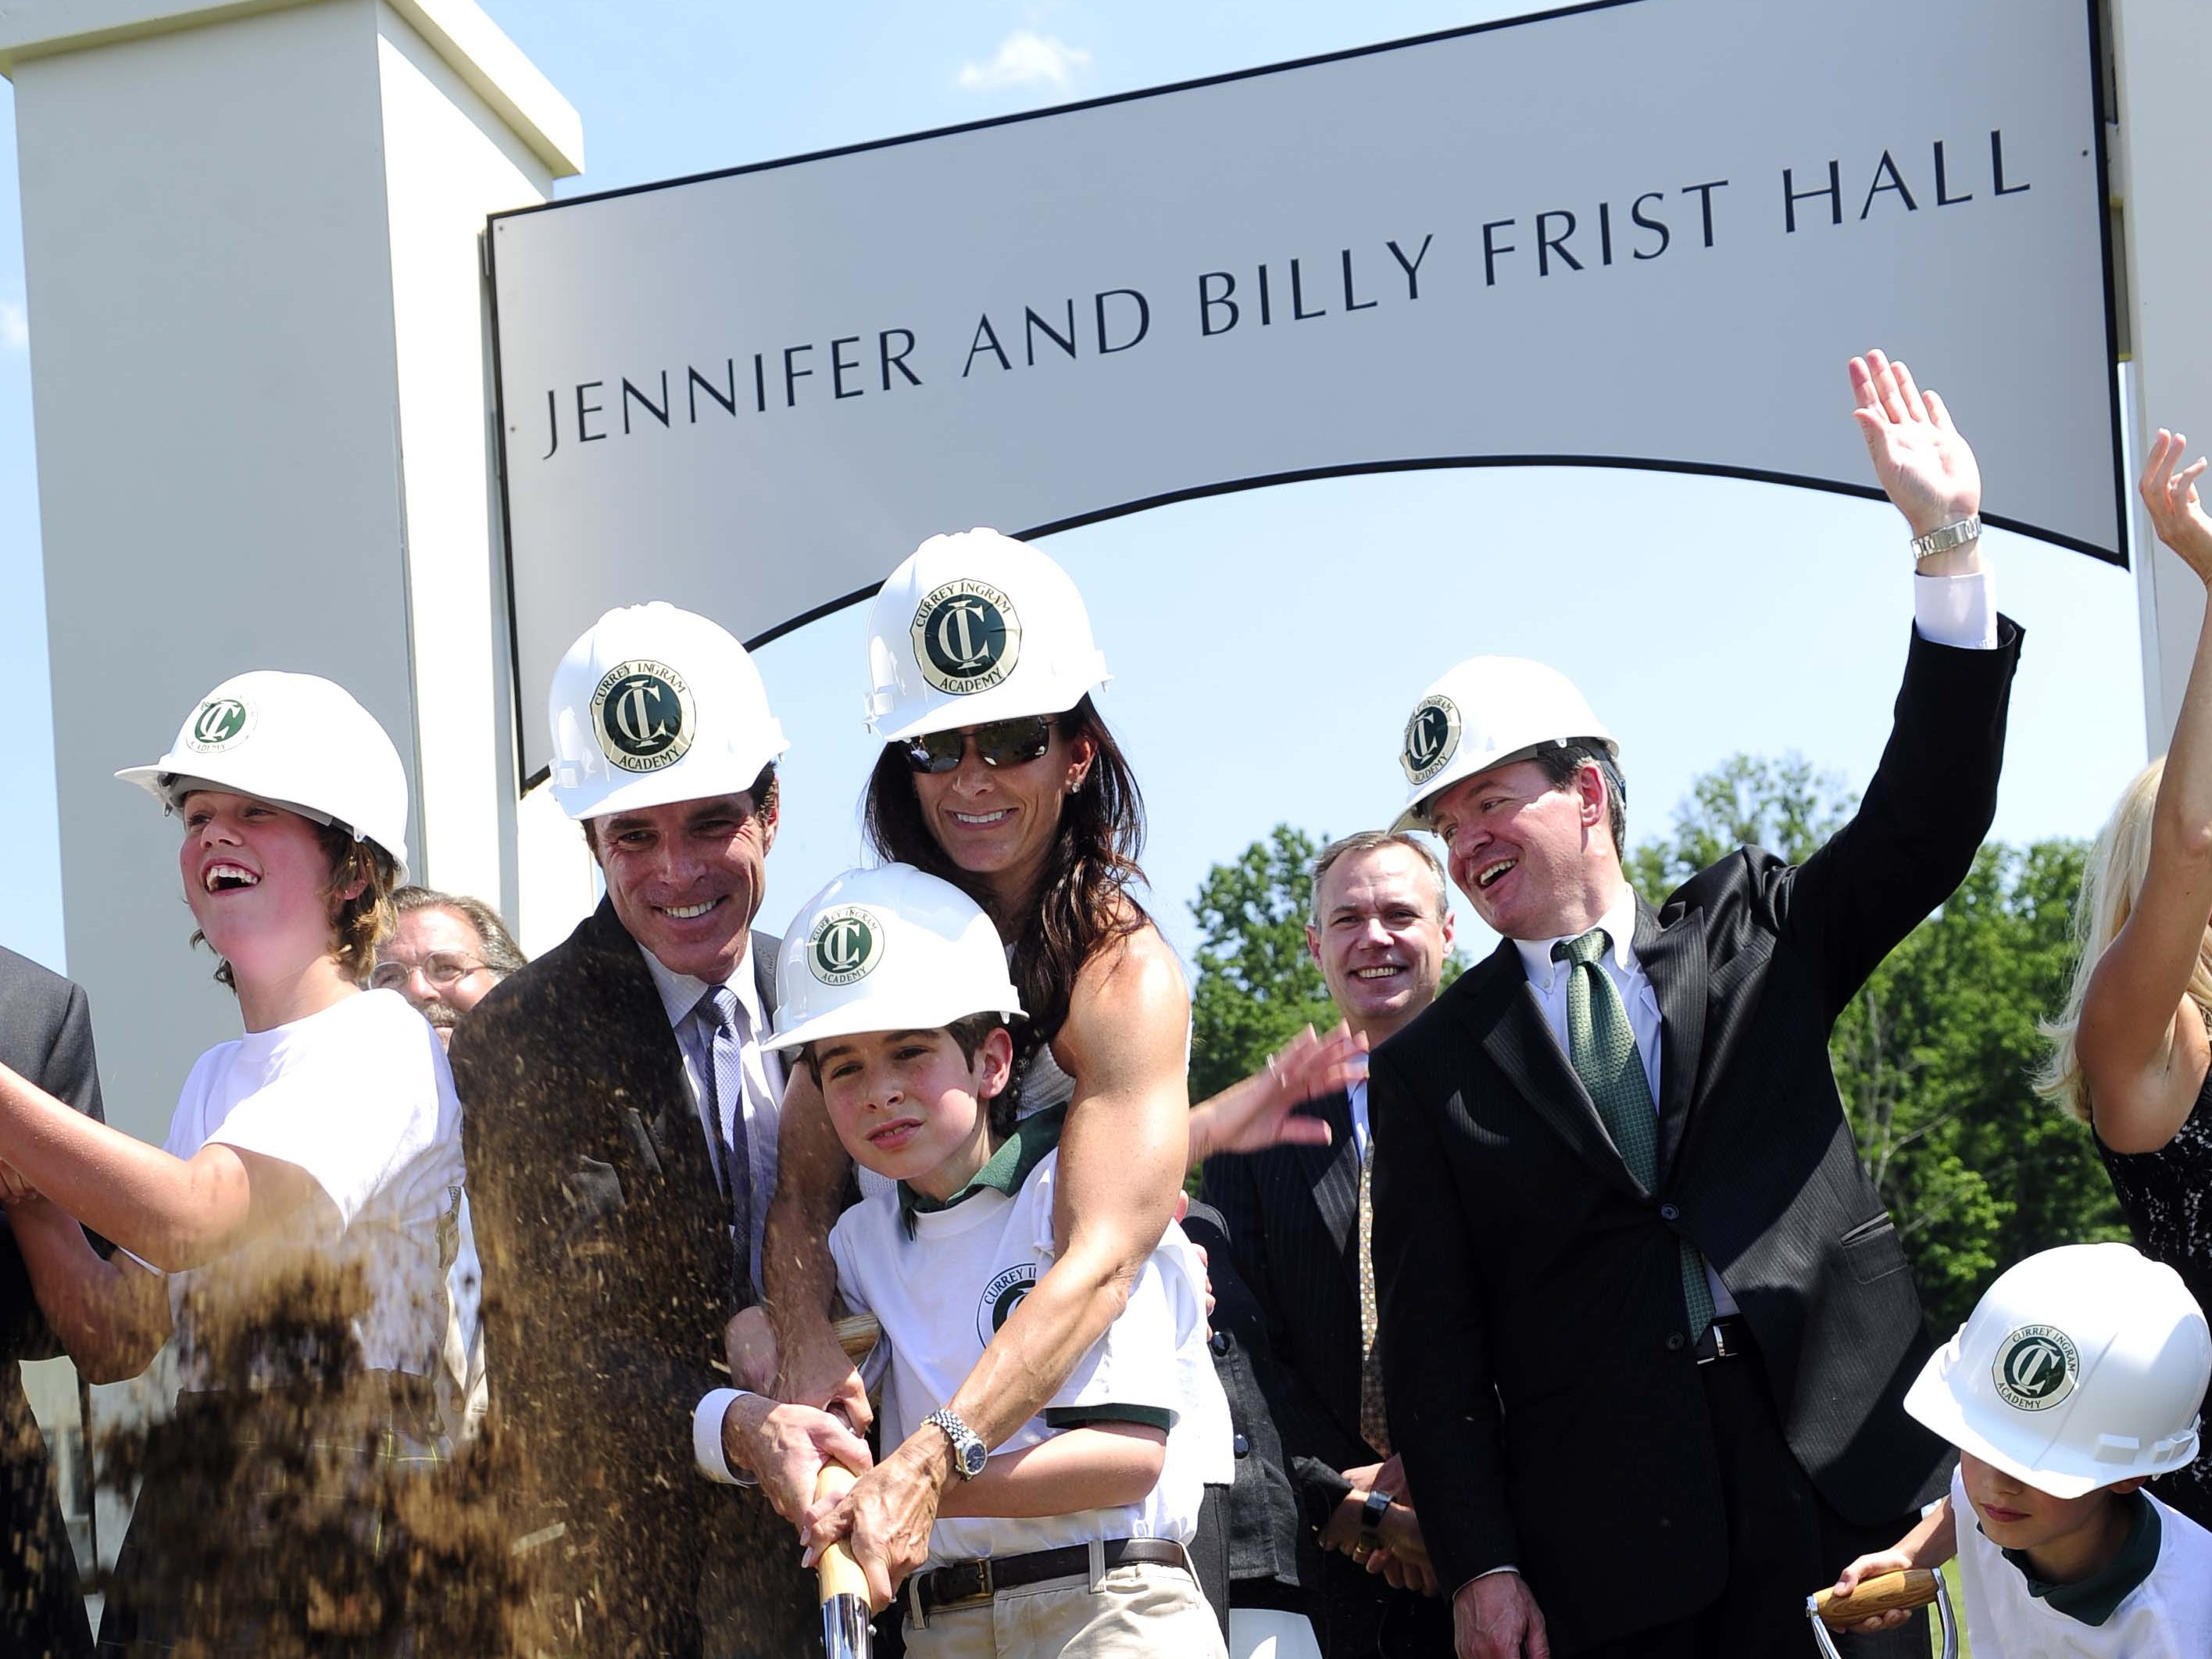 Billy and Jennifer Frist break ground with their son Walker Frist during the ceremony for a new student center at Currey Ingram Academy on May 16, 2012.